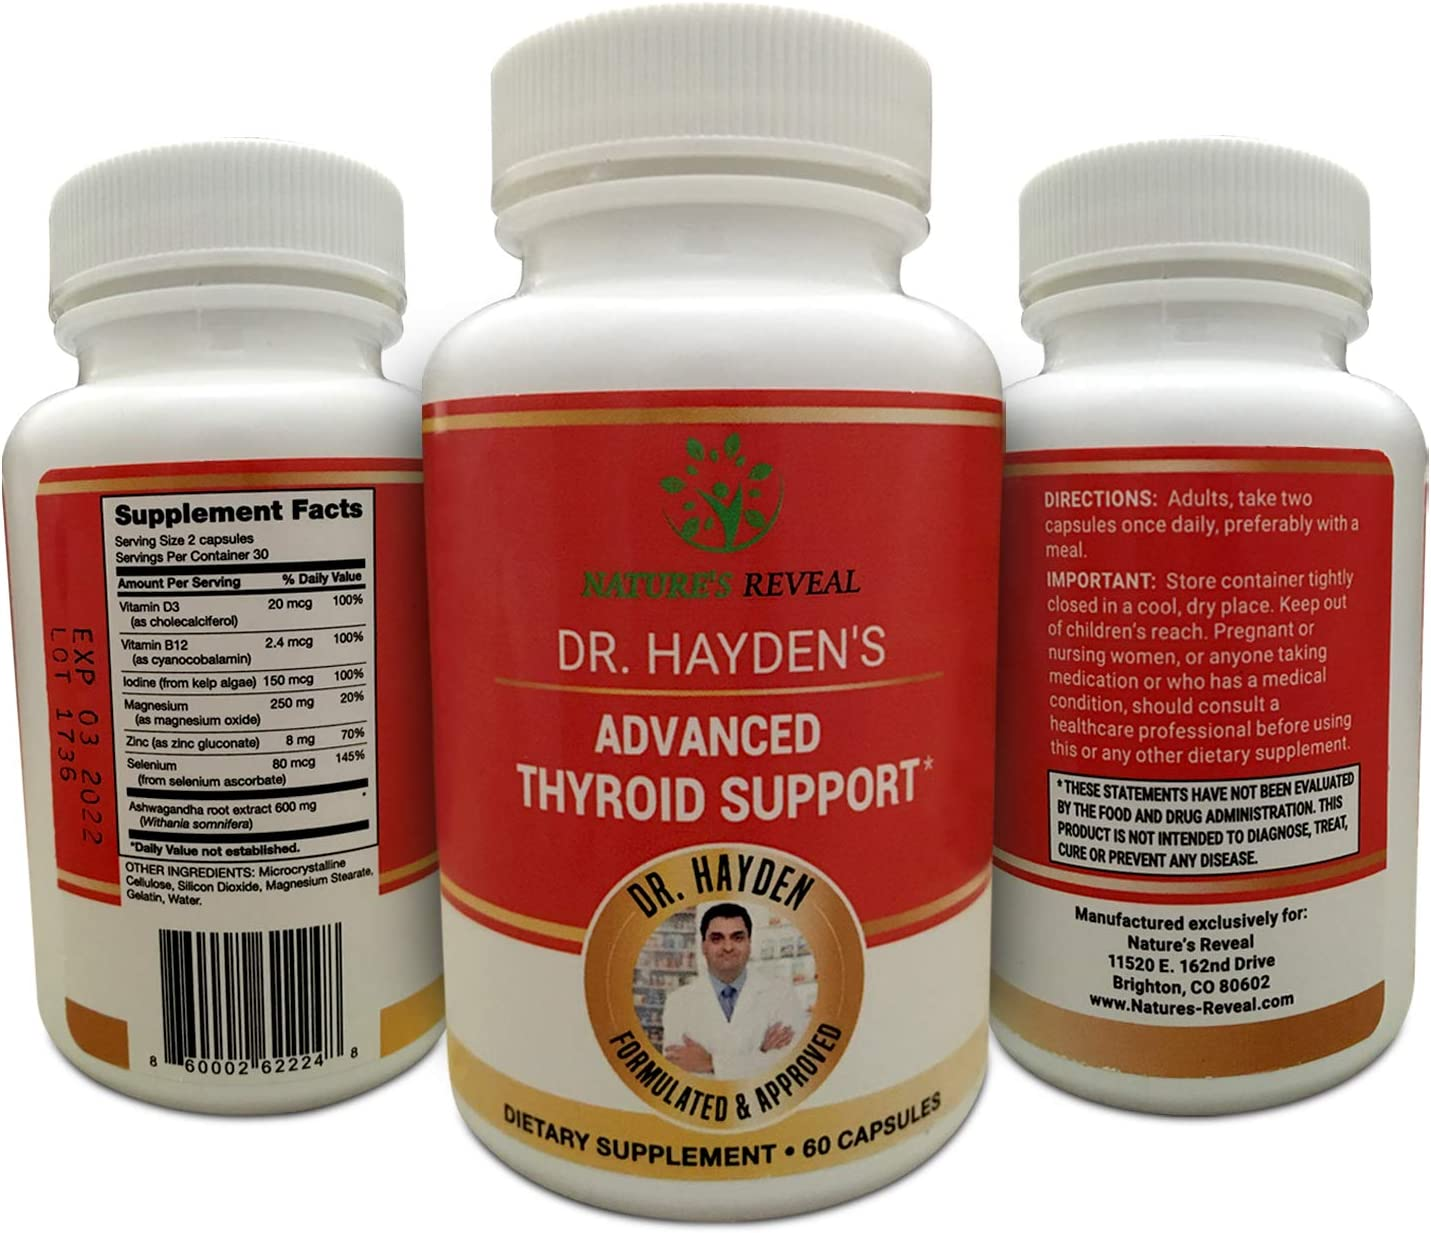 Dr. National products Hayden's Advanced Natural Supplement 35% OFF Contai Thyroid Support